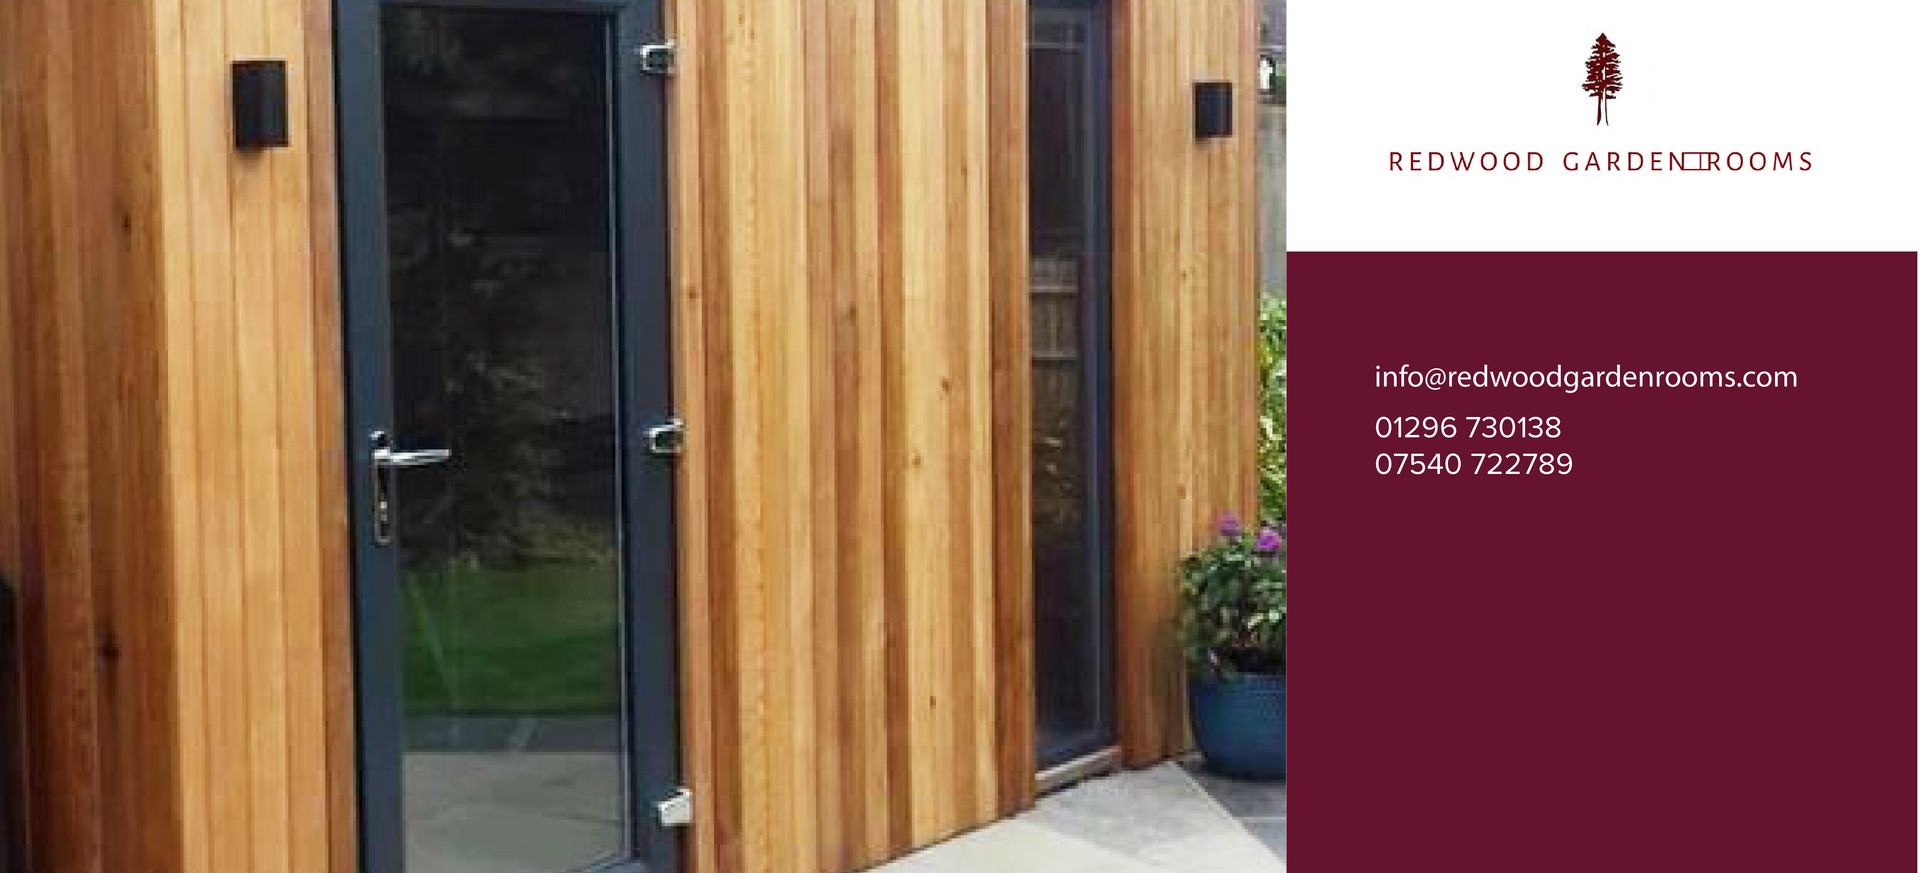 Redwood Garden Rooms - The Tool Shed